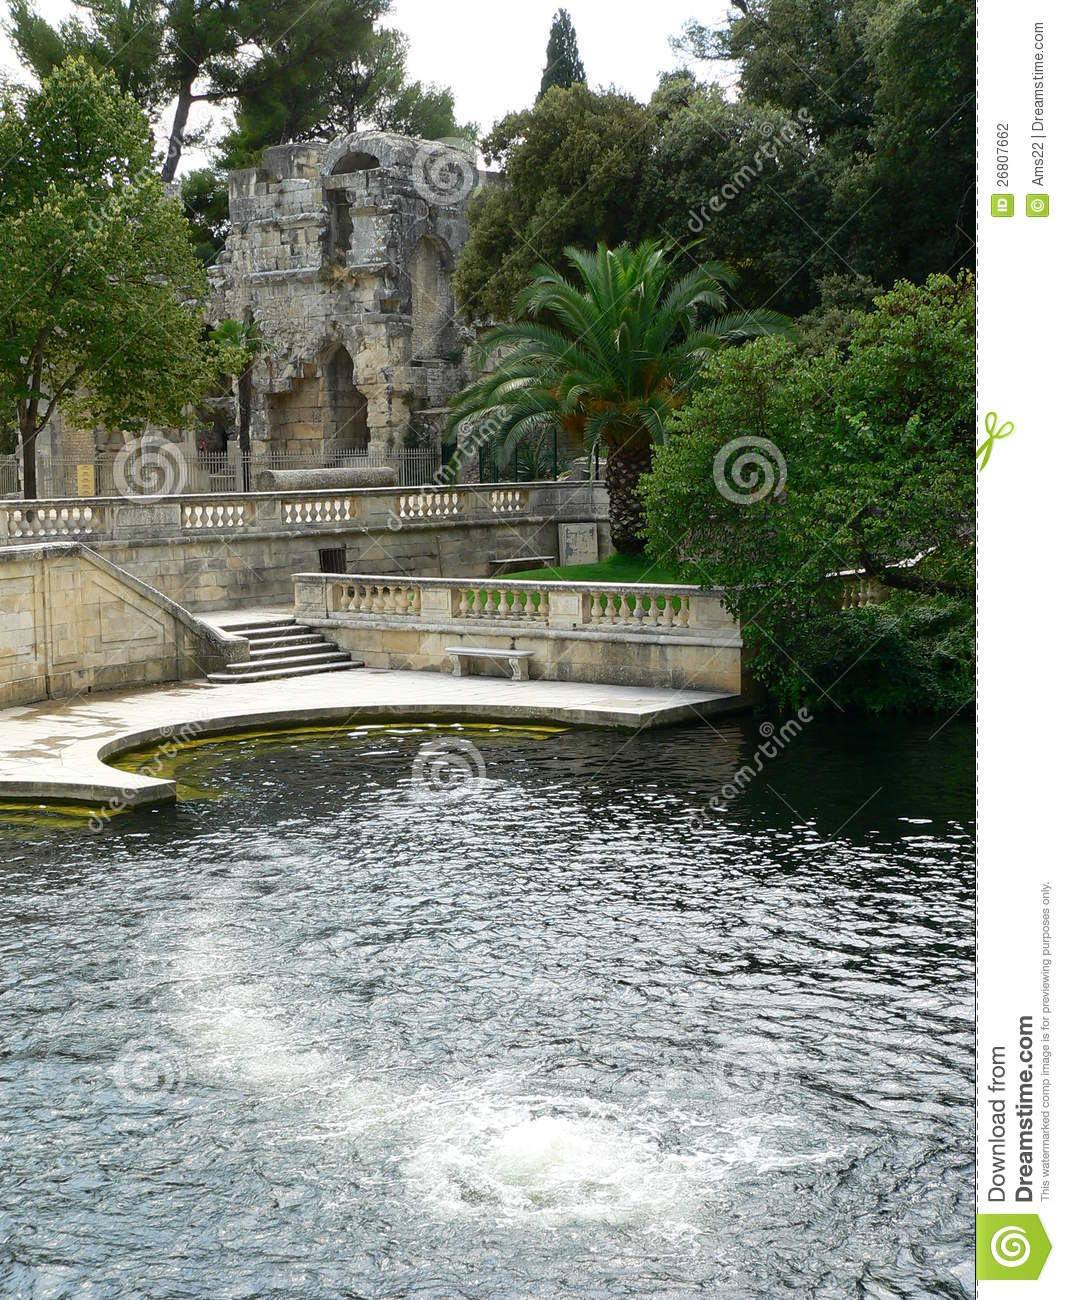 Fontaine nimes france stock photo 53782920 - Jardin des fontaines nimes ...